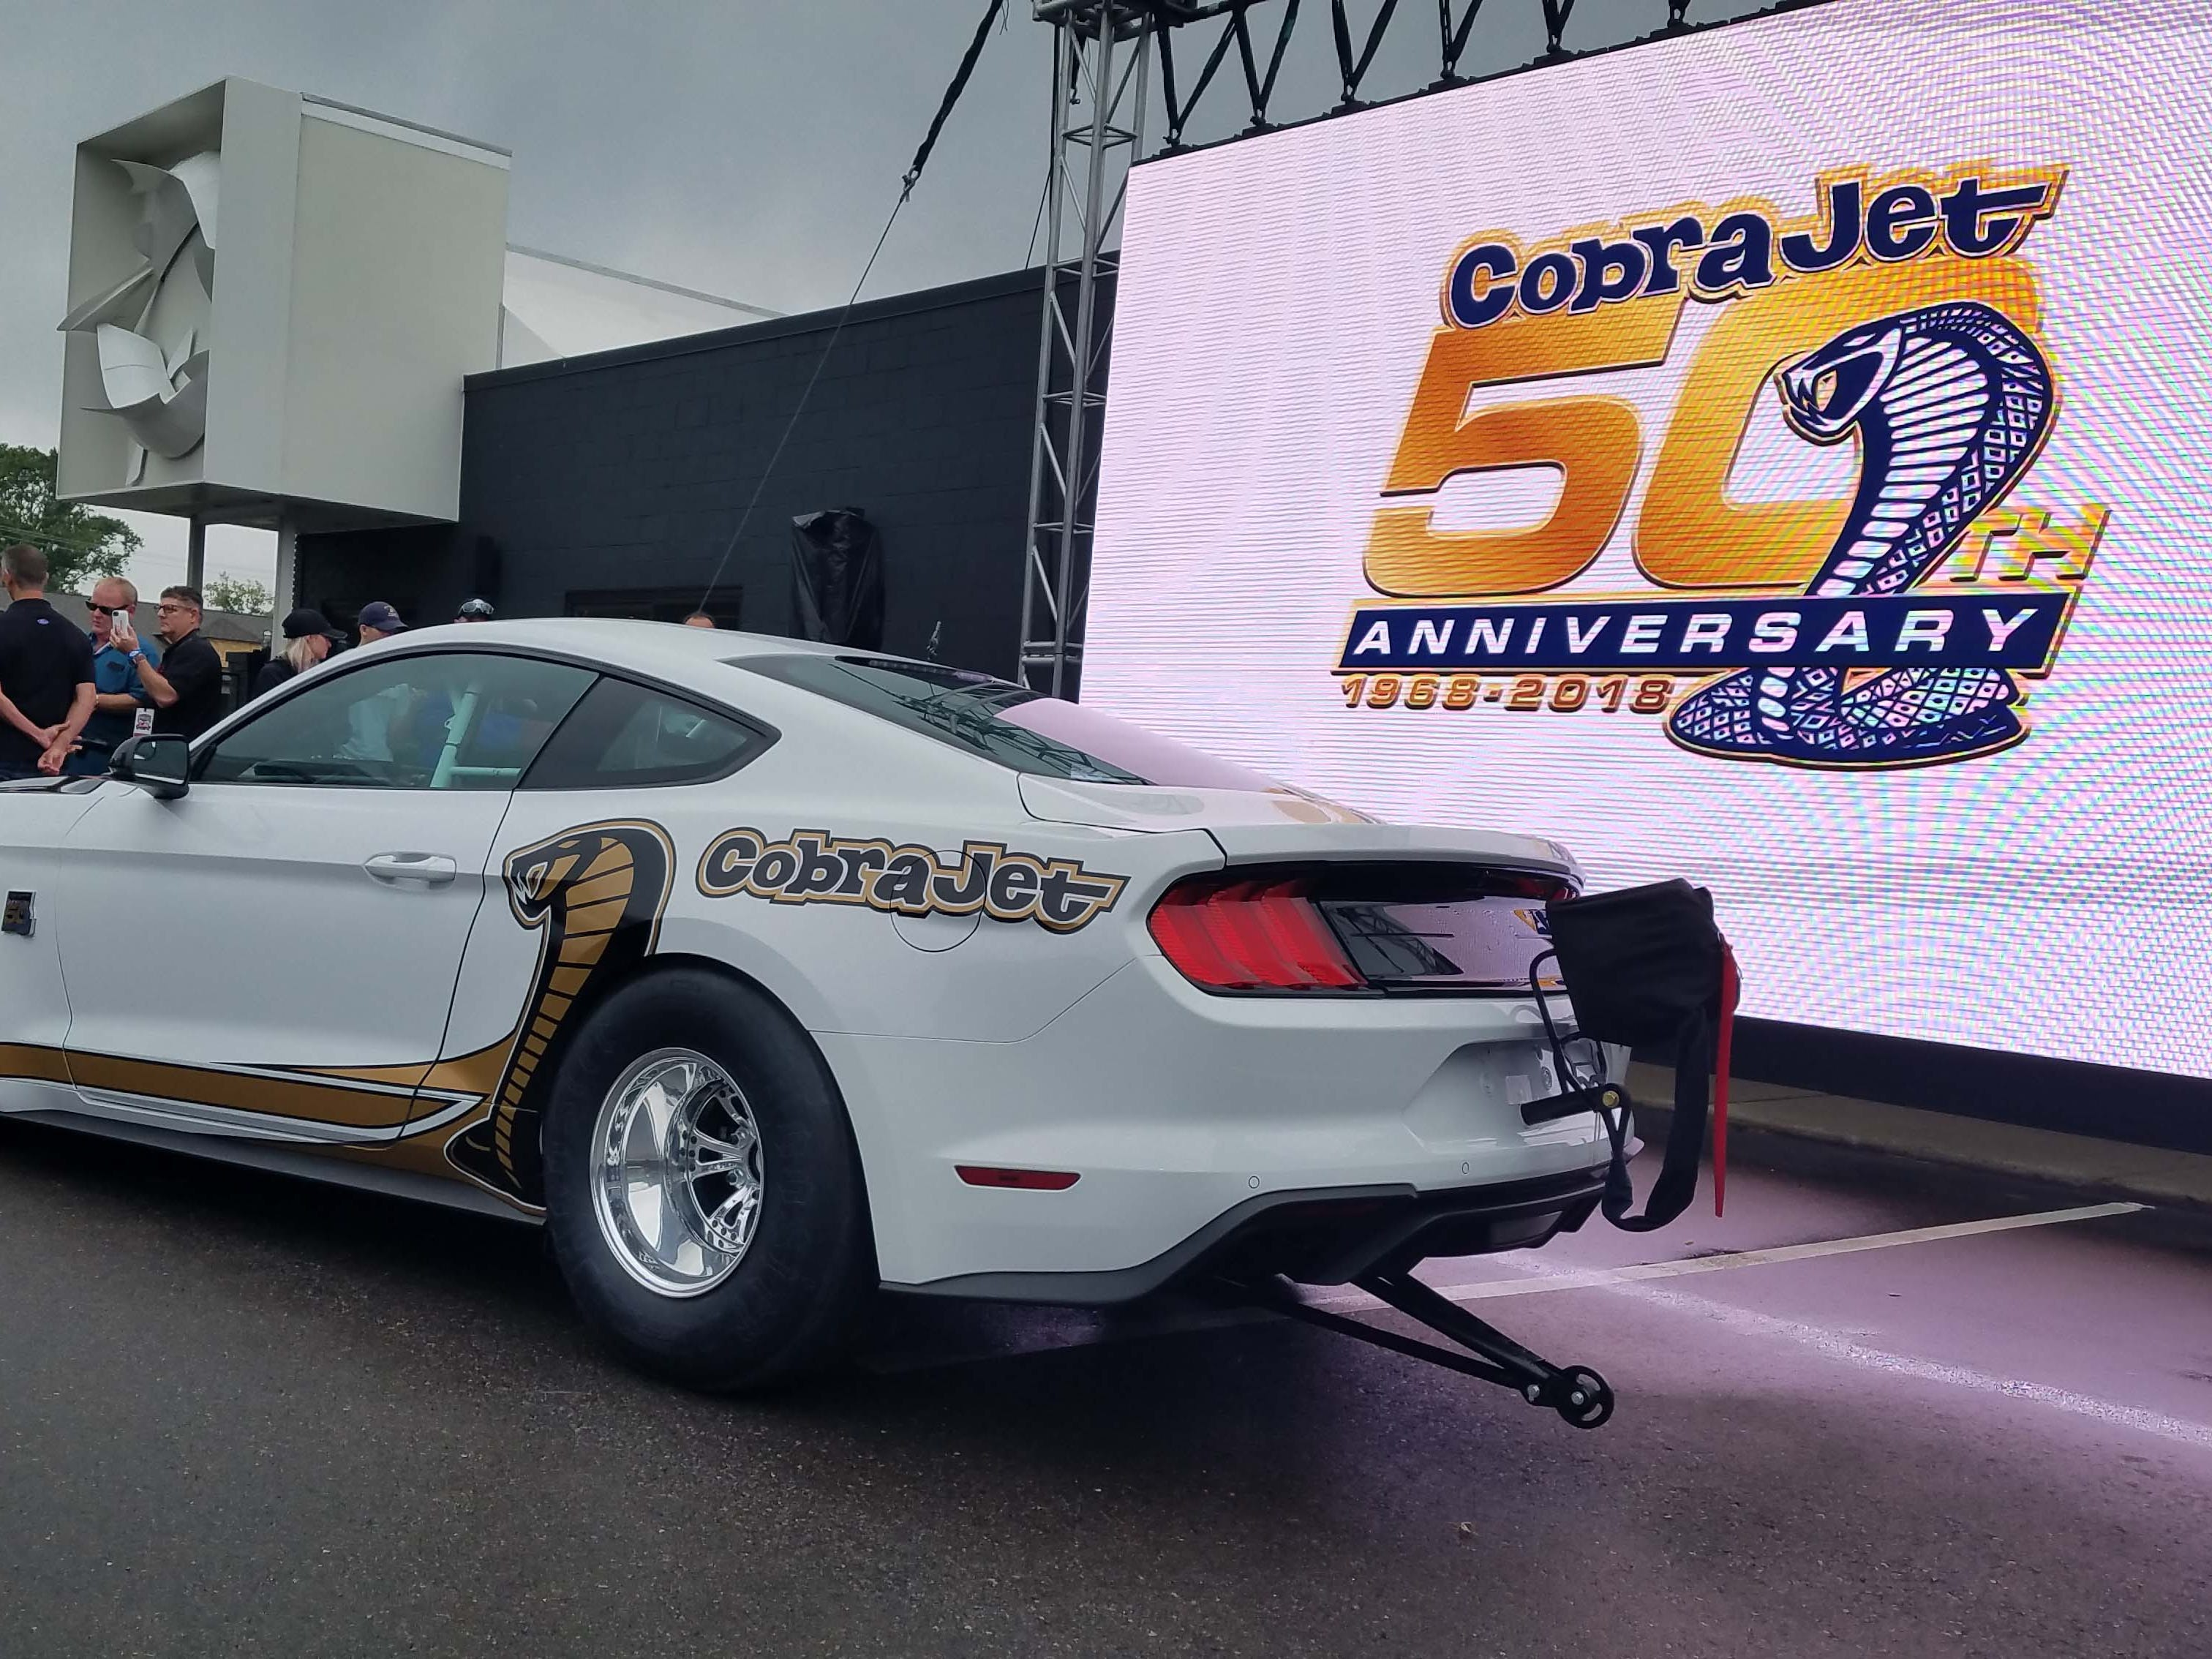 The Ford Mustang Cobra Jet will also debut at the NHRA Winternationals on Pomona, California February 9-10 weekend. The Cobra Jet uses a stock Ford V-8 block and competes in the Sportsman class.